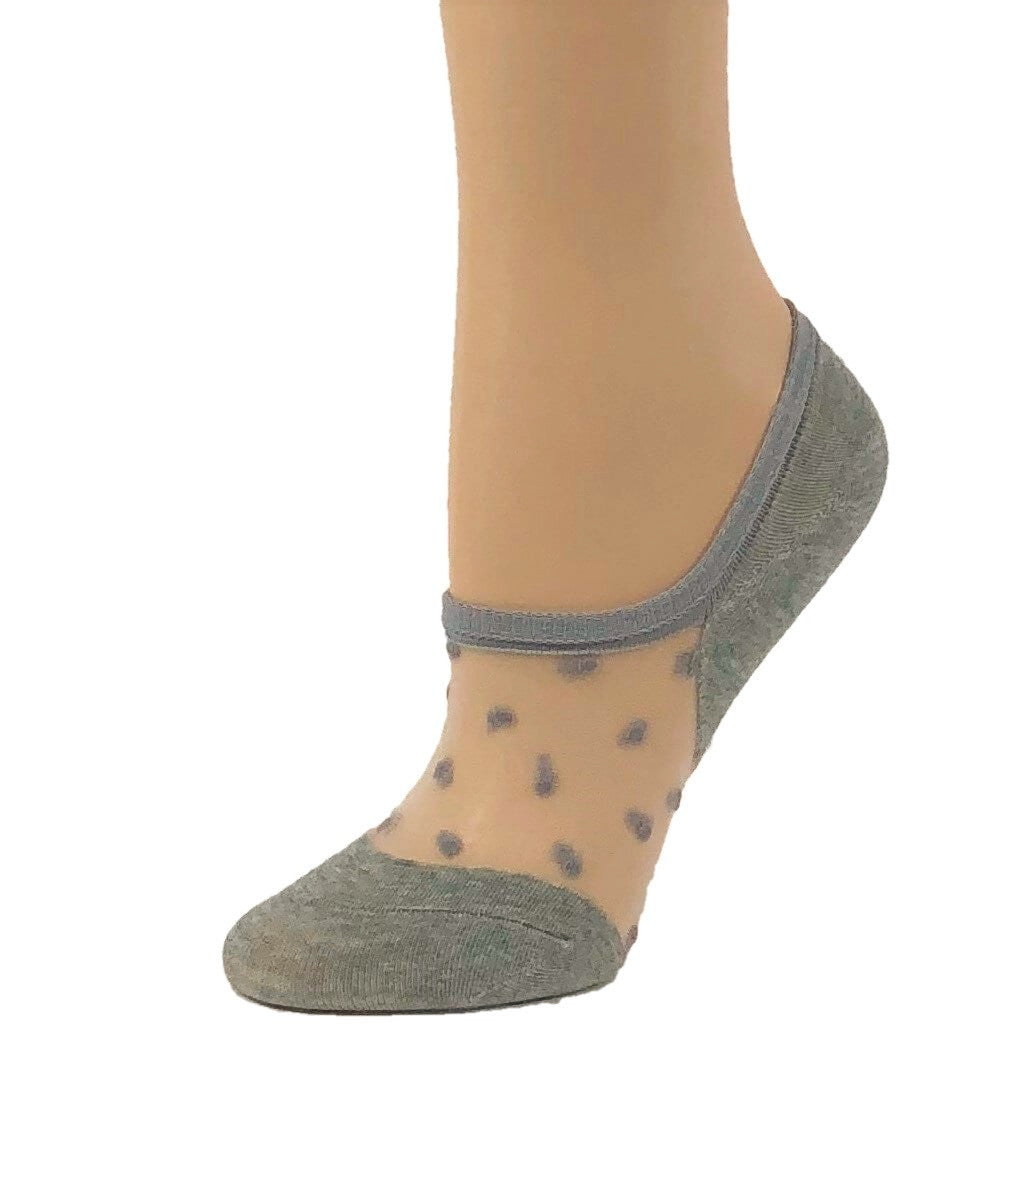 Stylish Dark Grey Dotted Ankle Sheer Socks - Global Trendz Fashion®